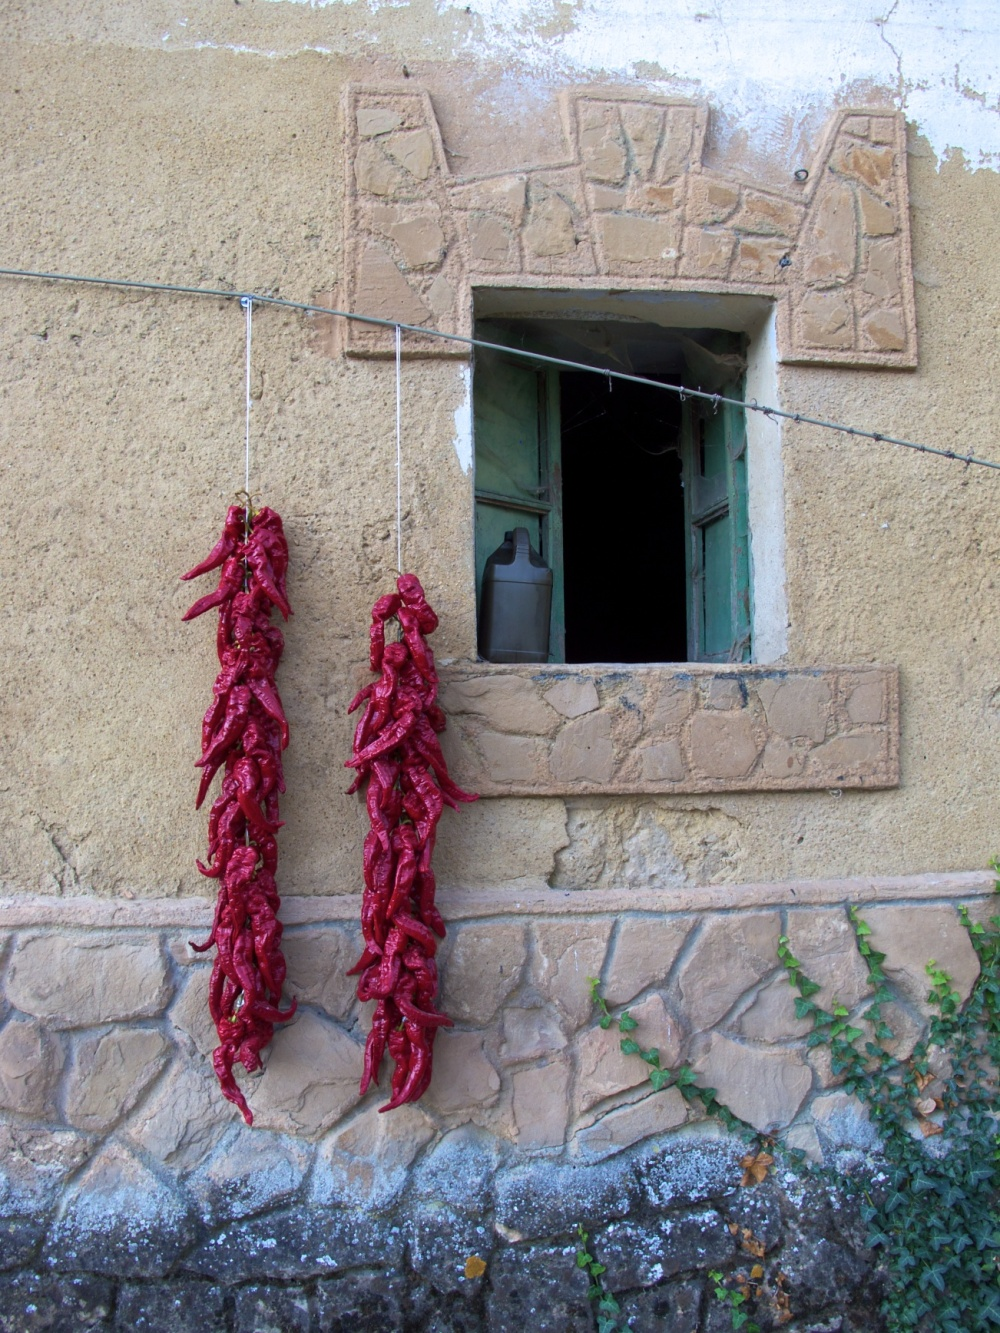 Hot peppers in Irache, Spain  Oct2011